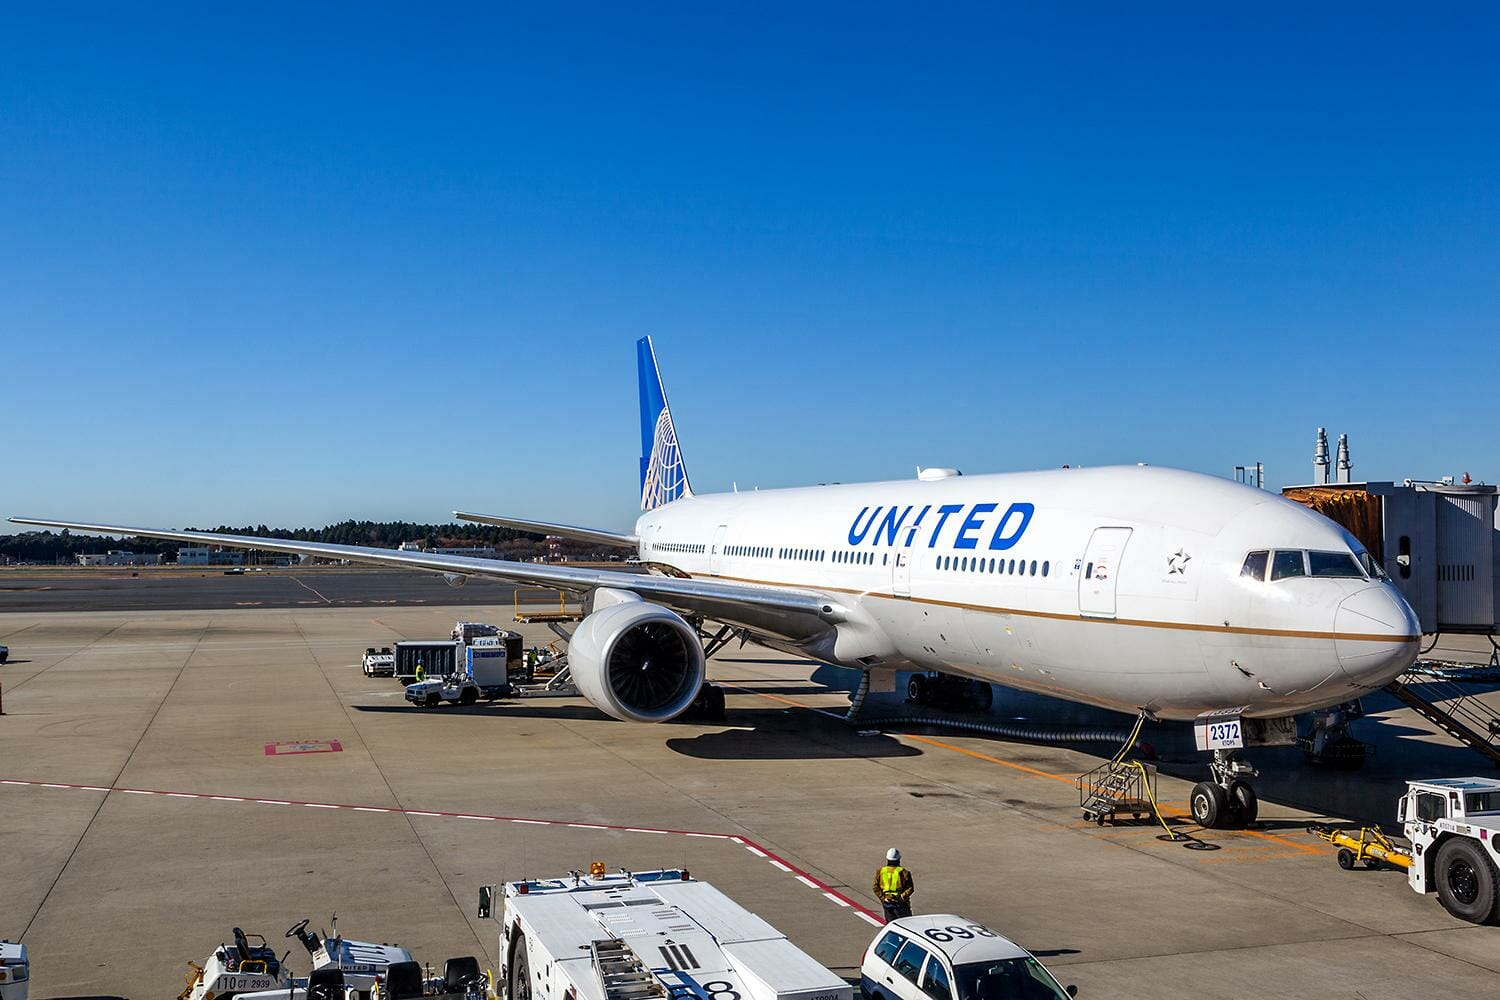 Federal Judge Restrains United Airlines From Enforcing Covid Vaccine Mandate on Employees Seeking Religious Exemption